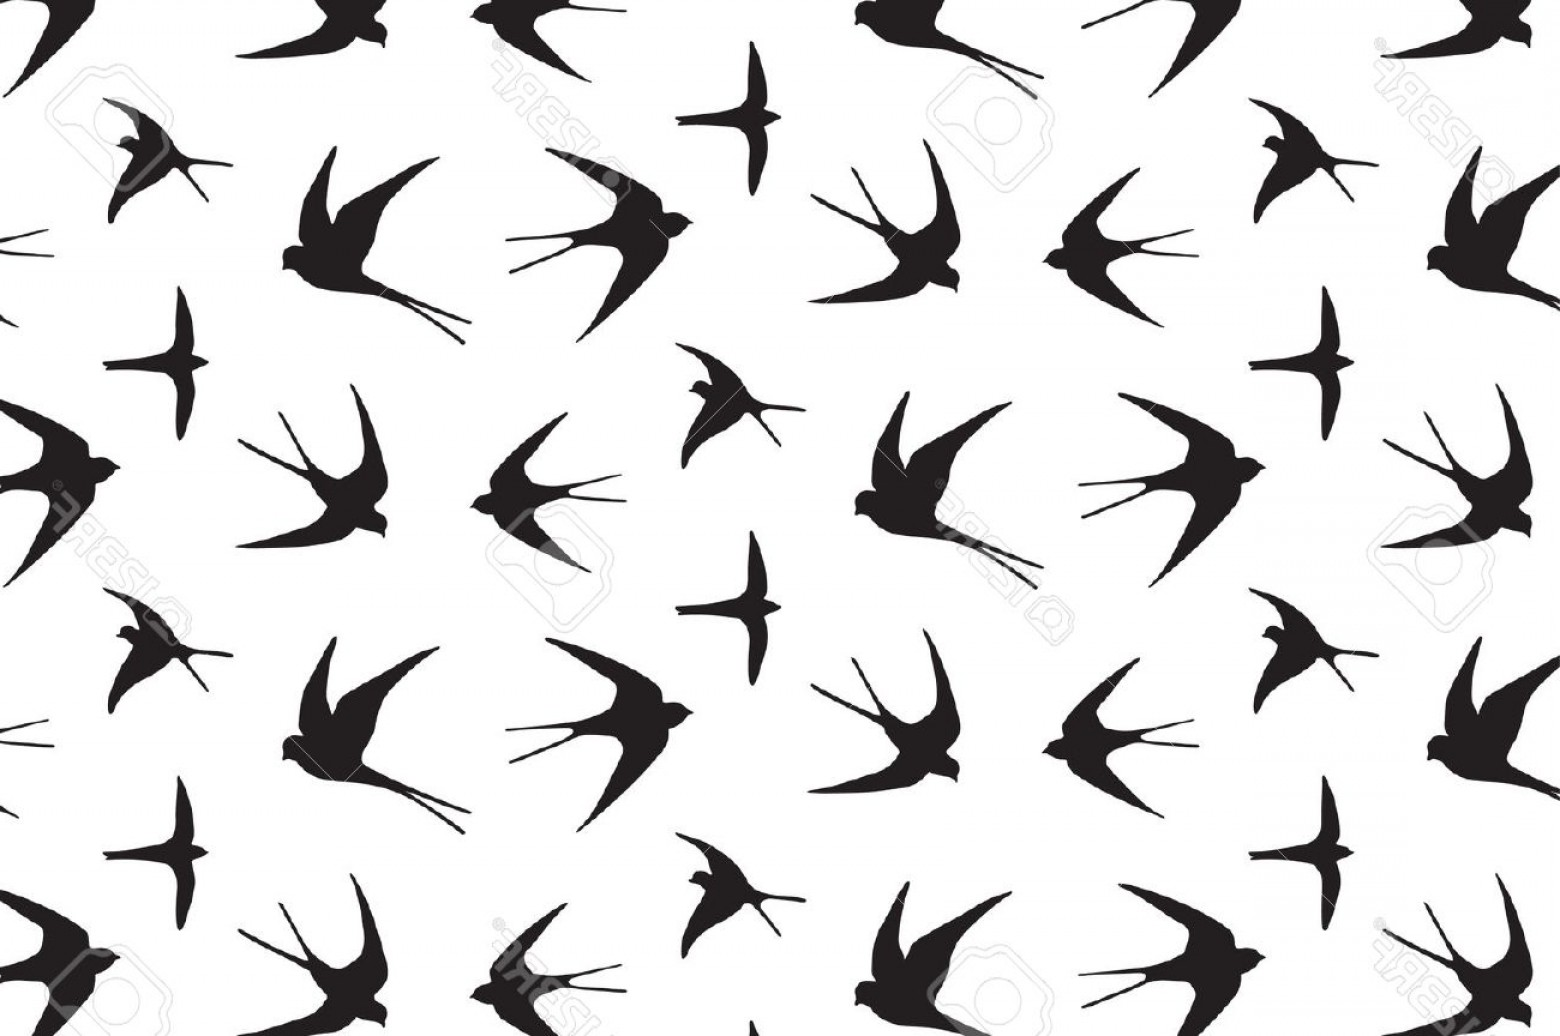 Swallow Vector: Photostock Vector Japanese Swallow Vector Hand Drawing Graphic Pattern